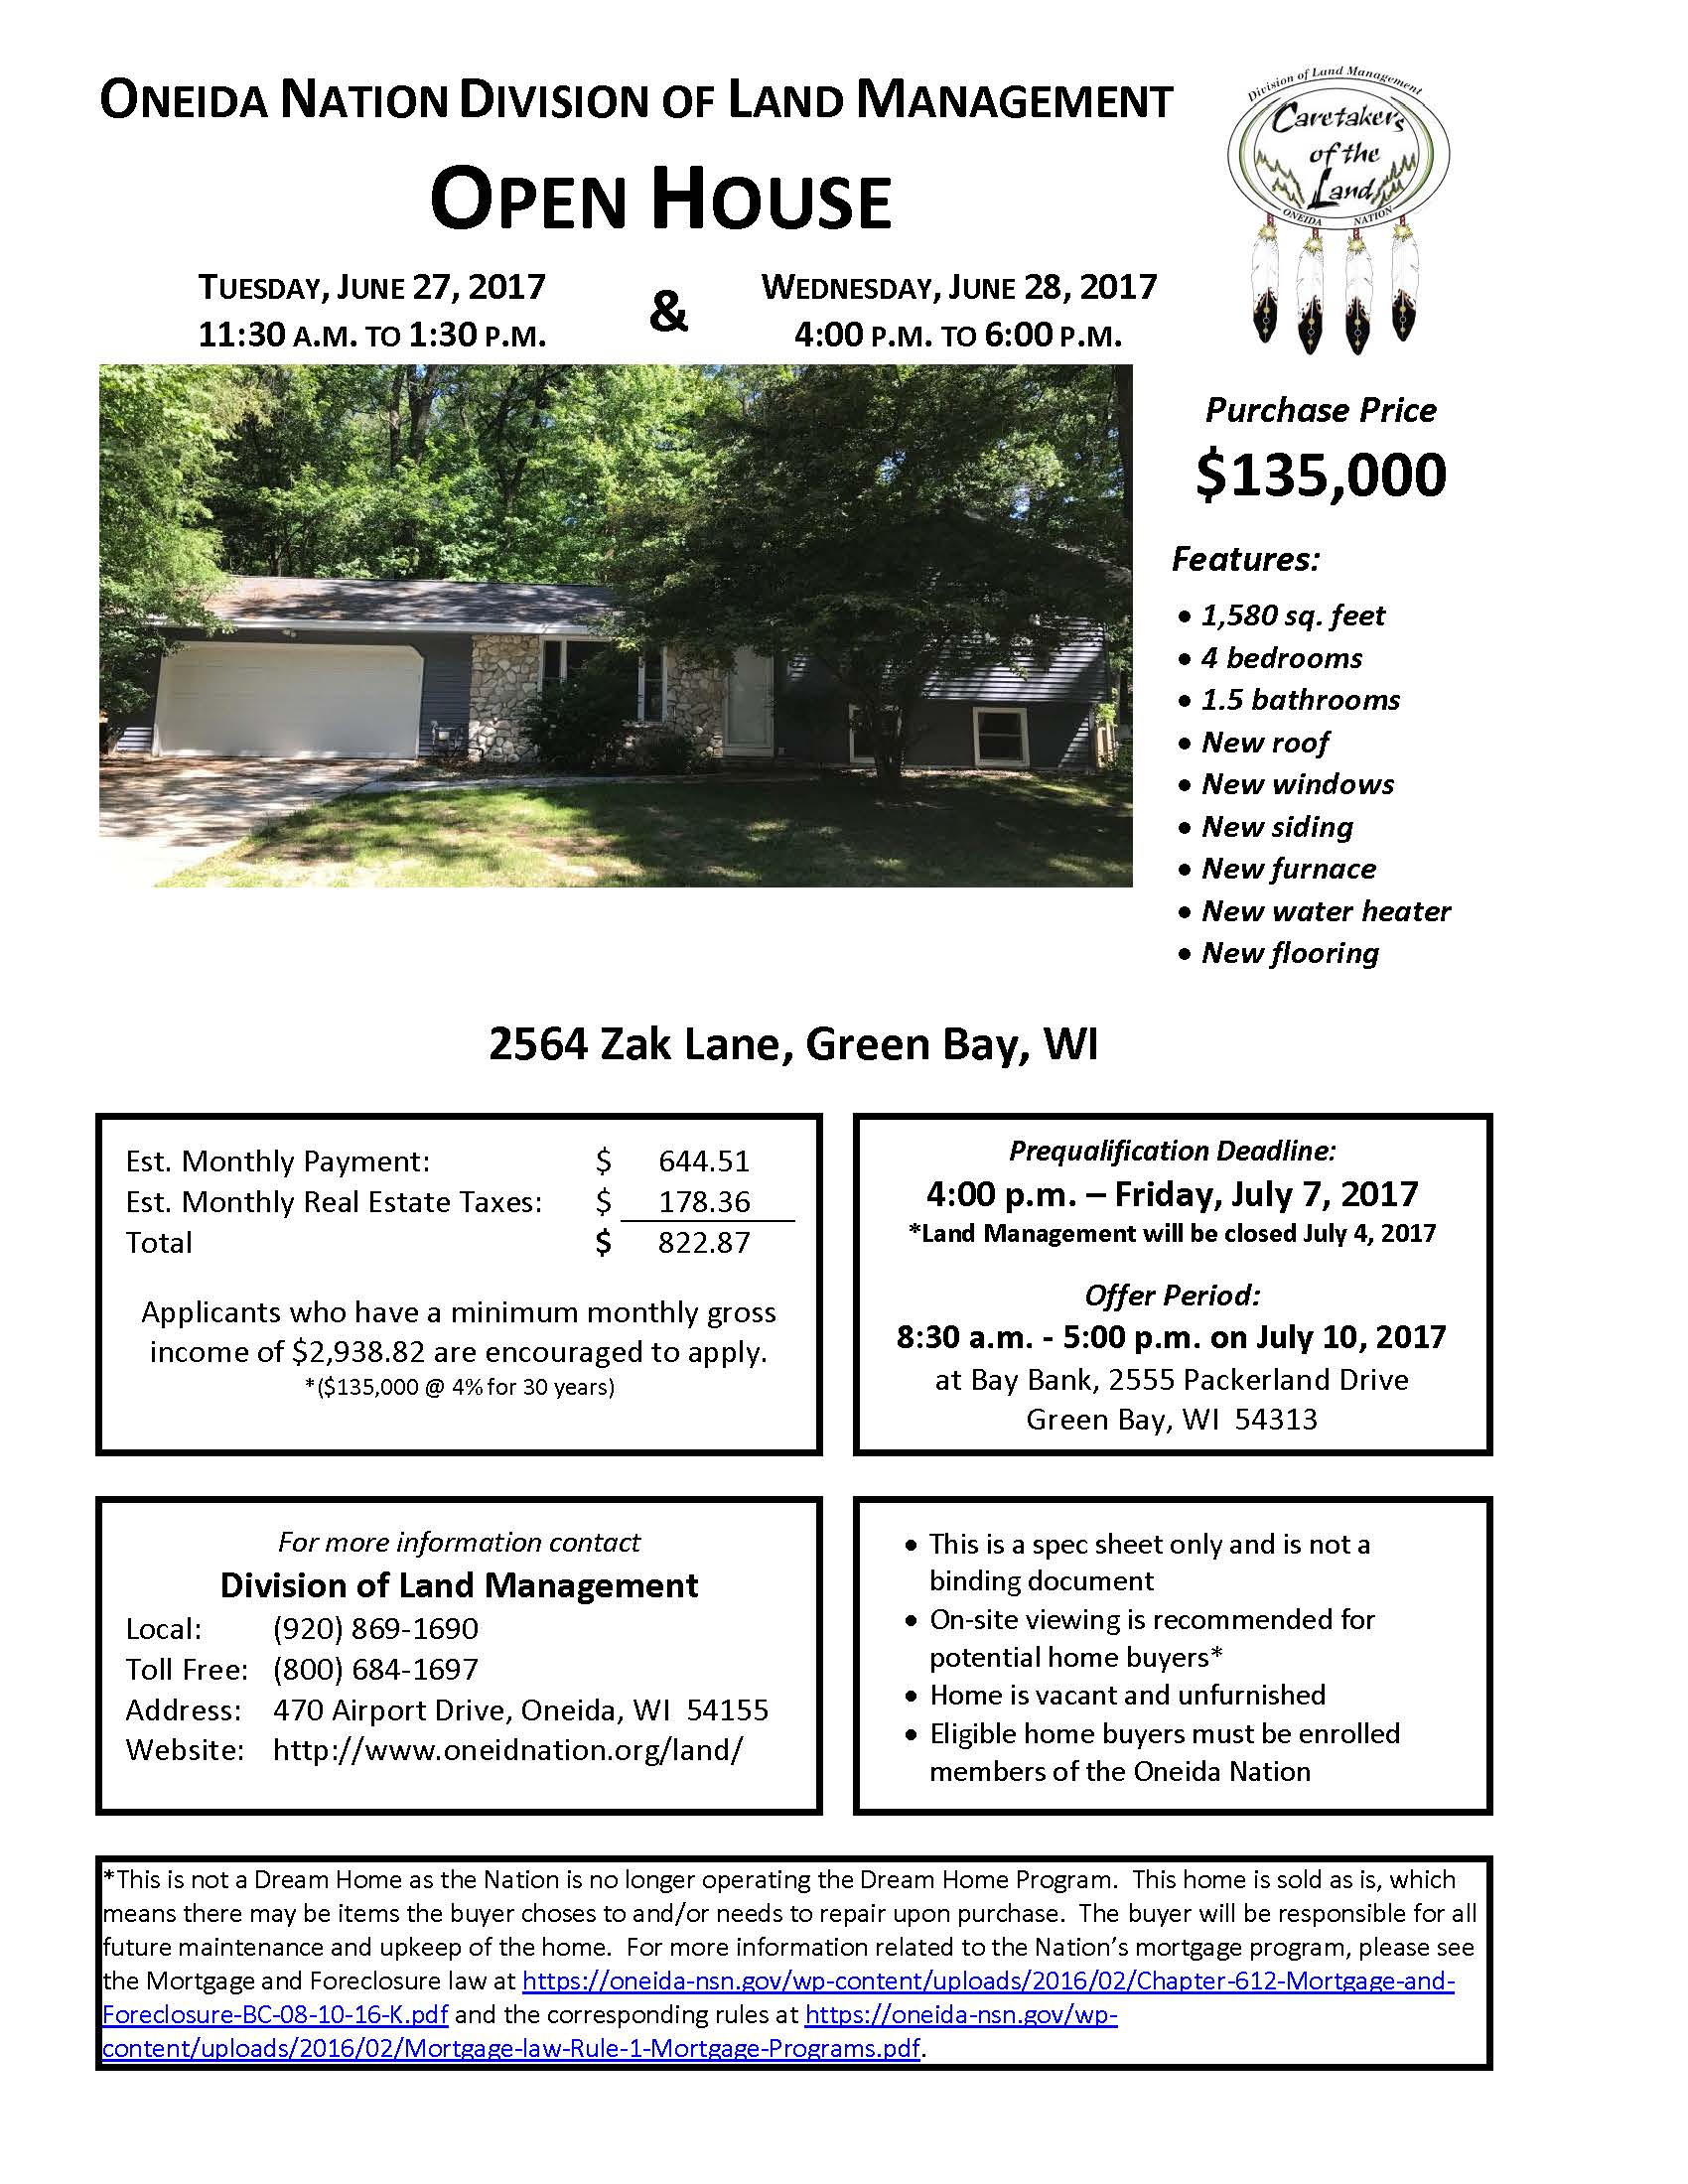 062117 OPEN HOUSE 2564 zak lane